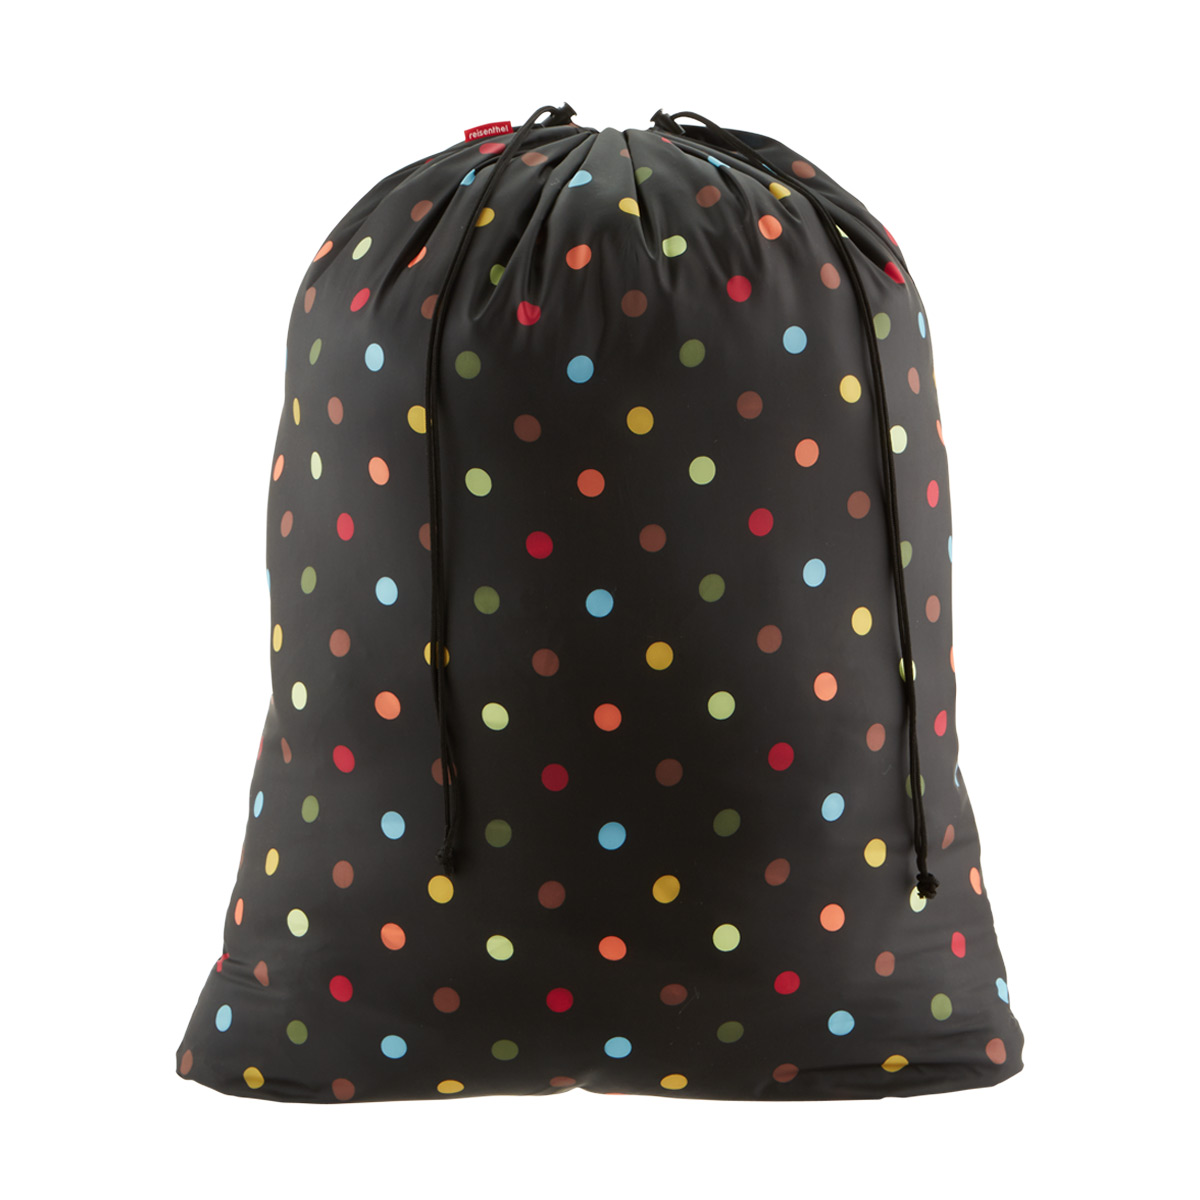 Laundry Bag Black Multi Dots